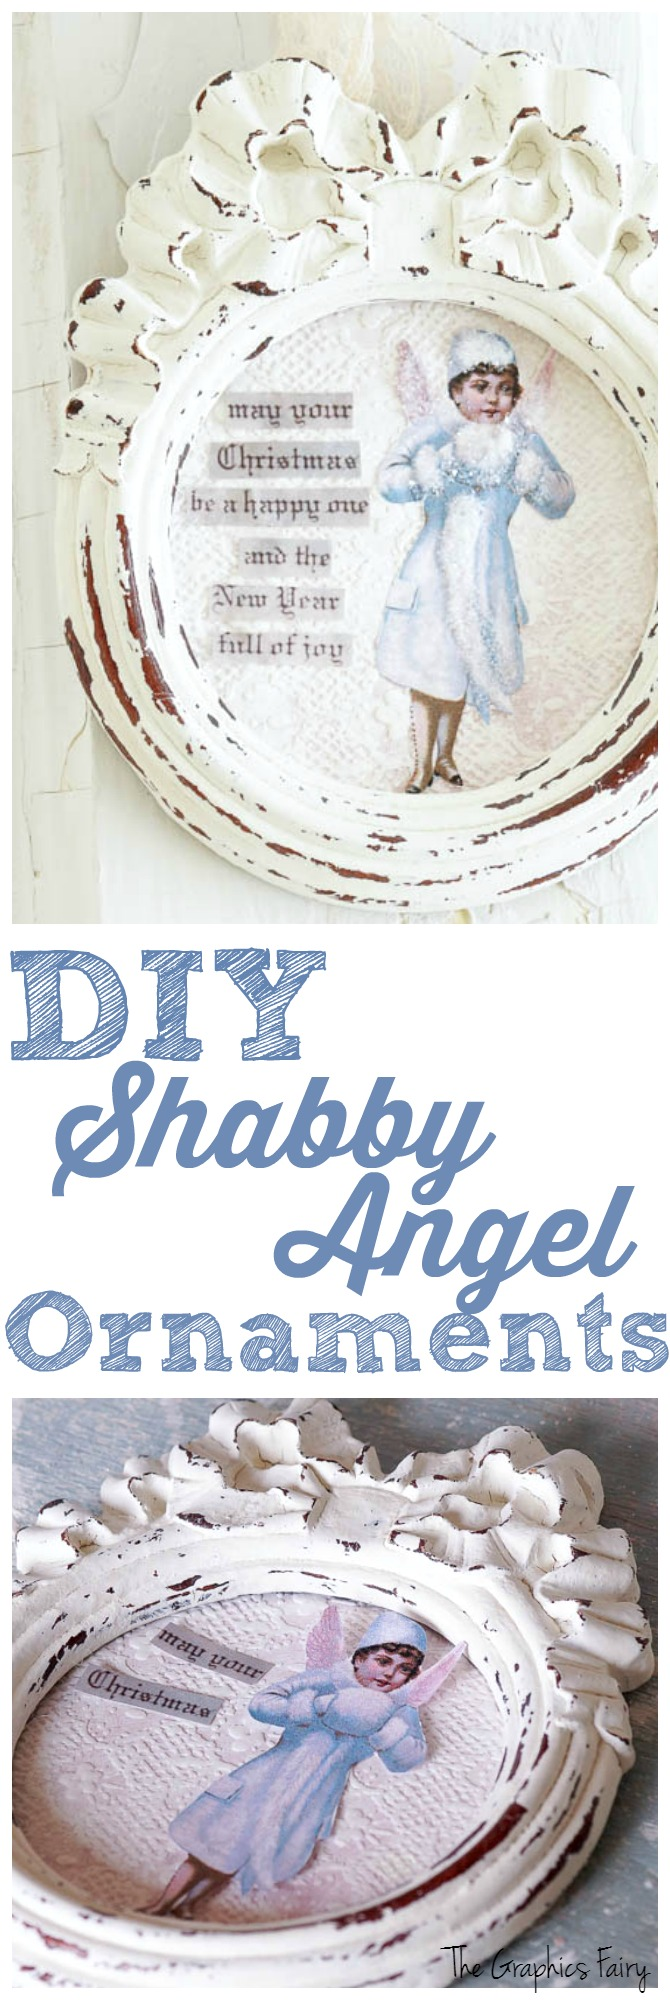 DIY Shabby Angel Ornaments - The Graphics Fairy